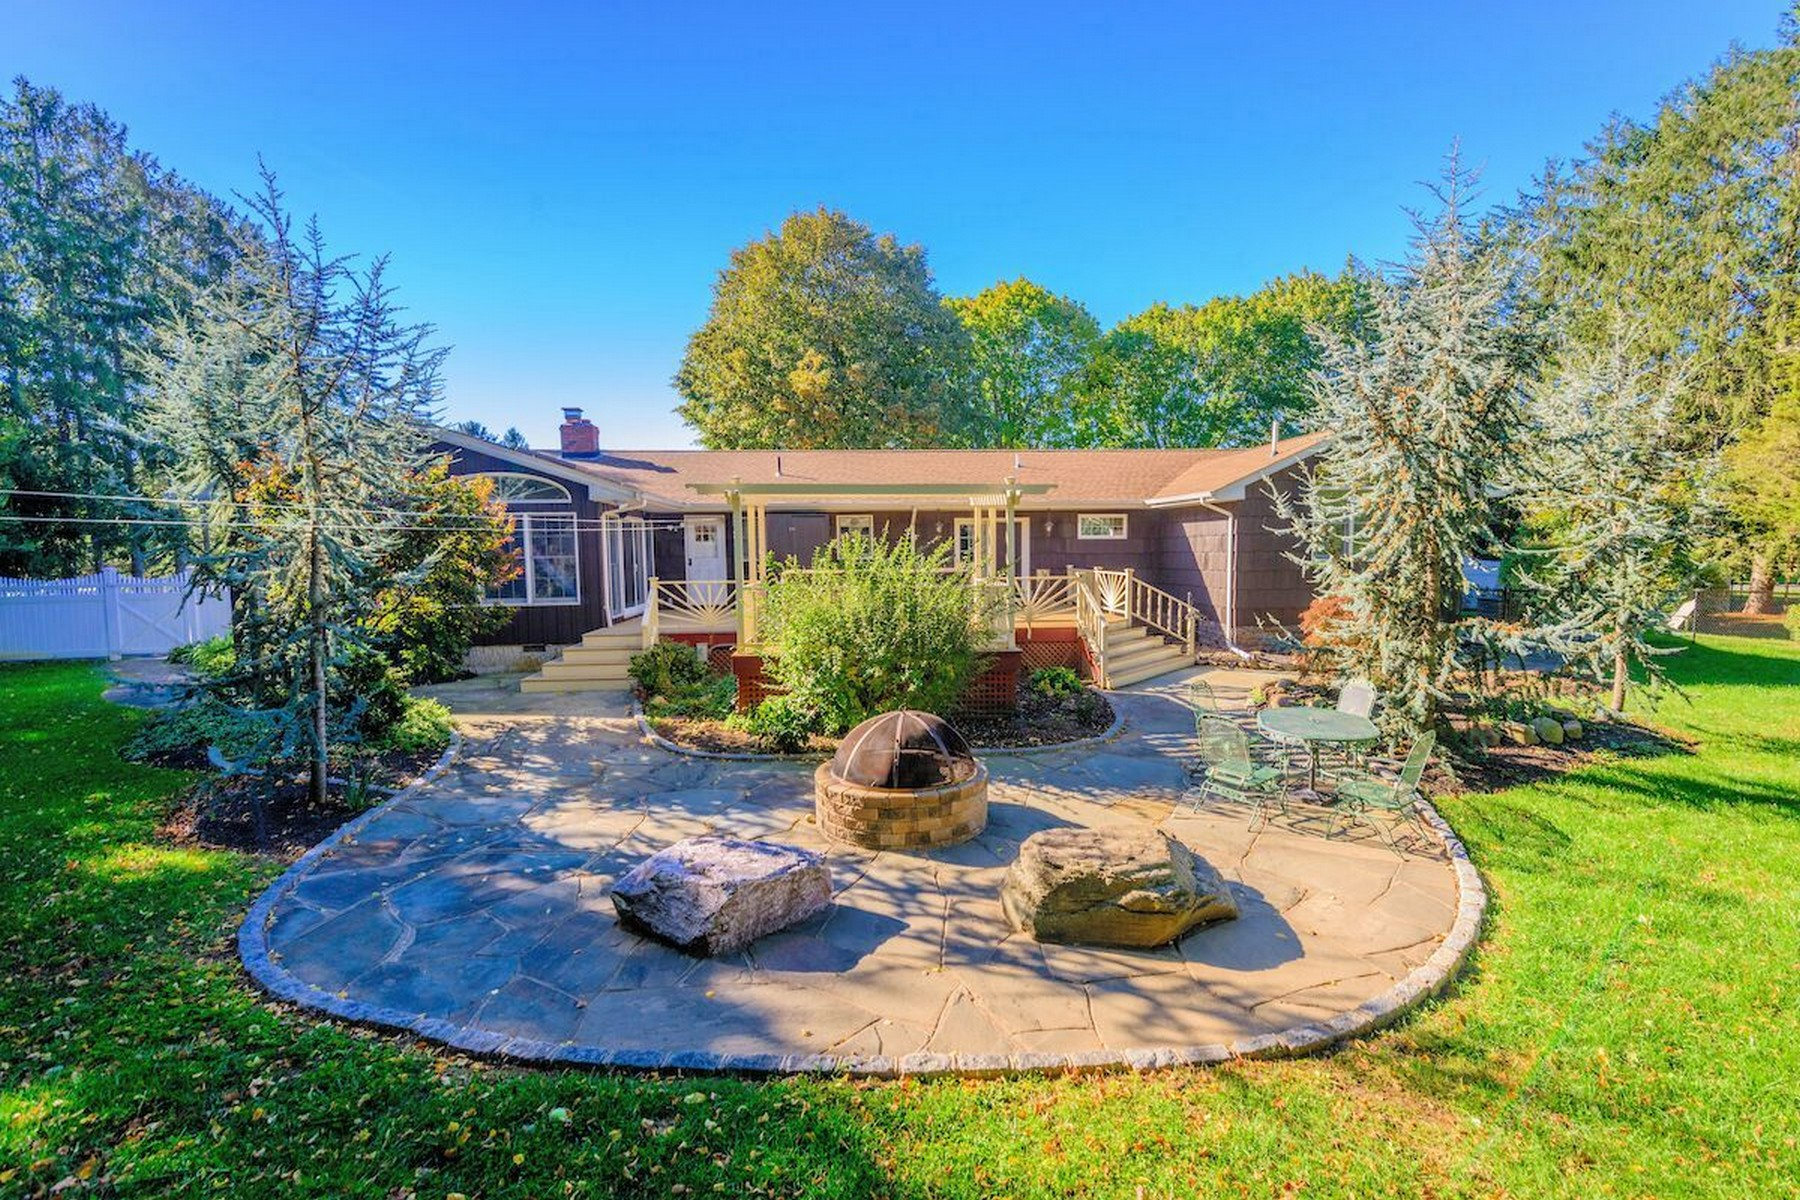 Single Family Home for Sale at Ranch 305 Leeward Dr Southold, New York 11971 United States